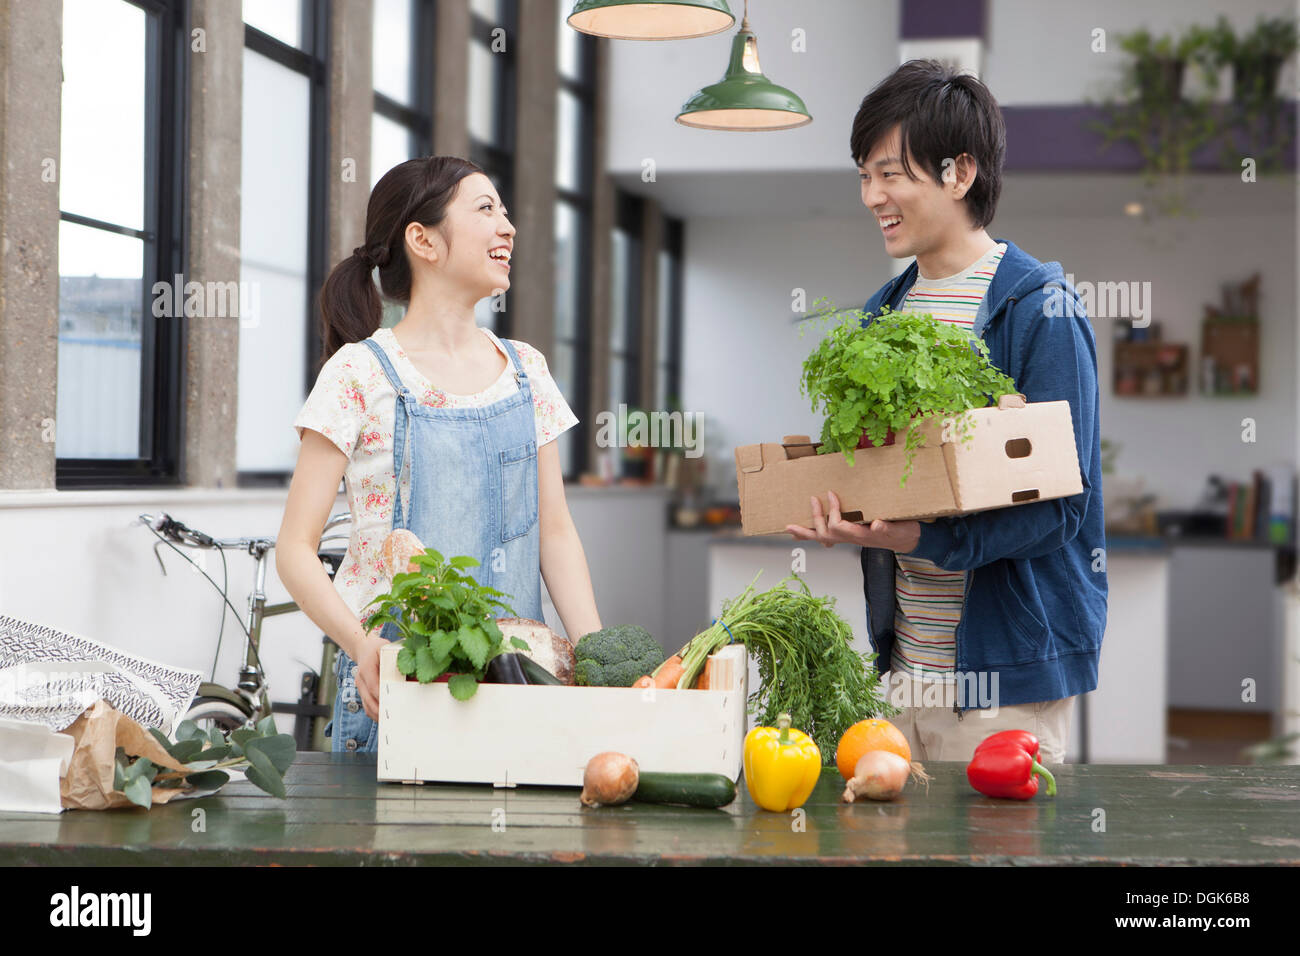 Portrait of young couple in kitchen with herbs and vegetables - Stock Image